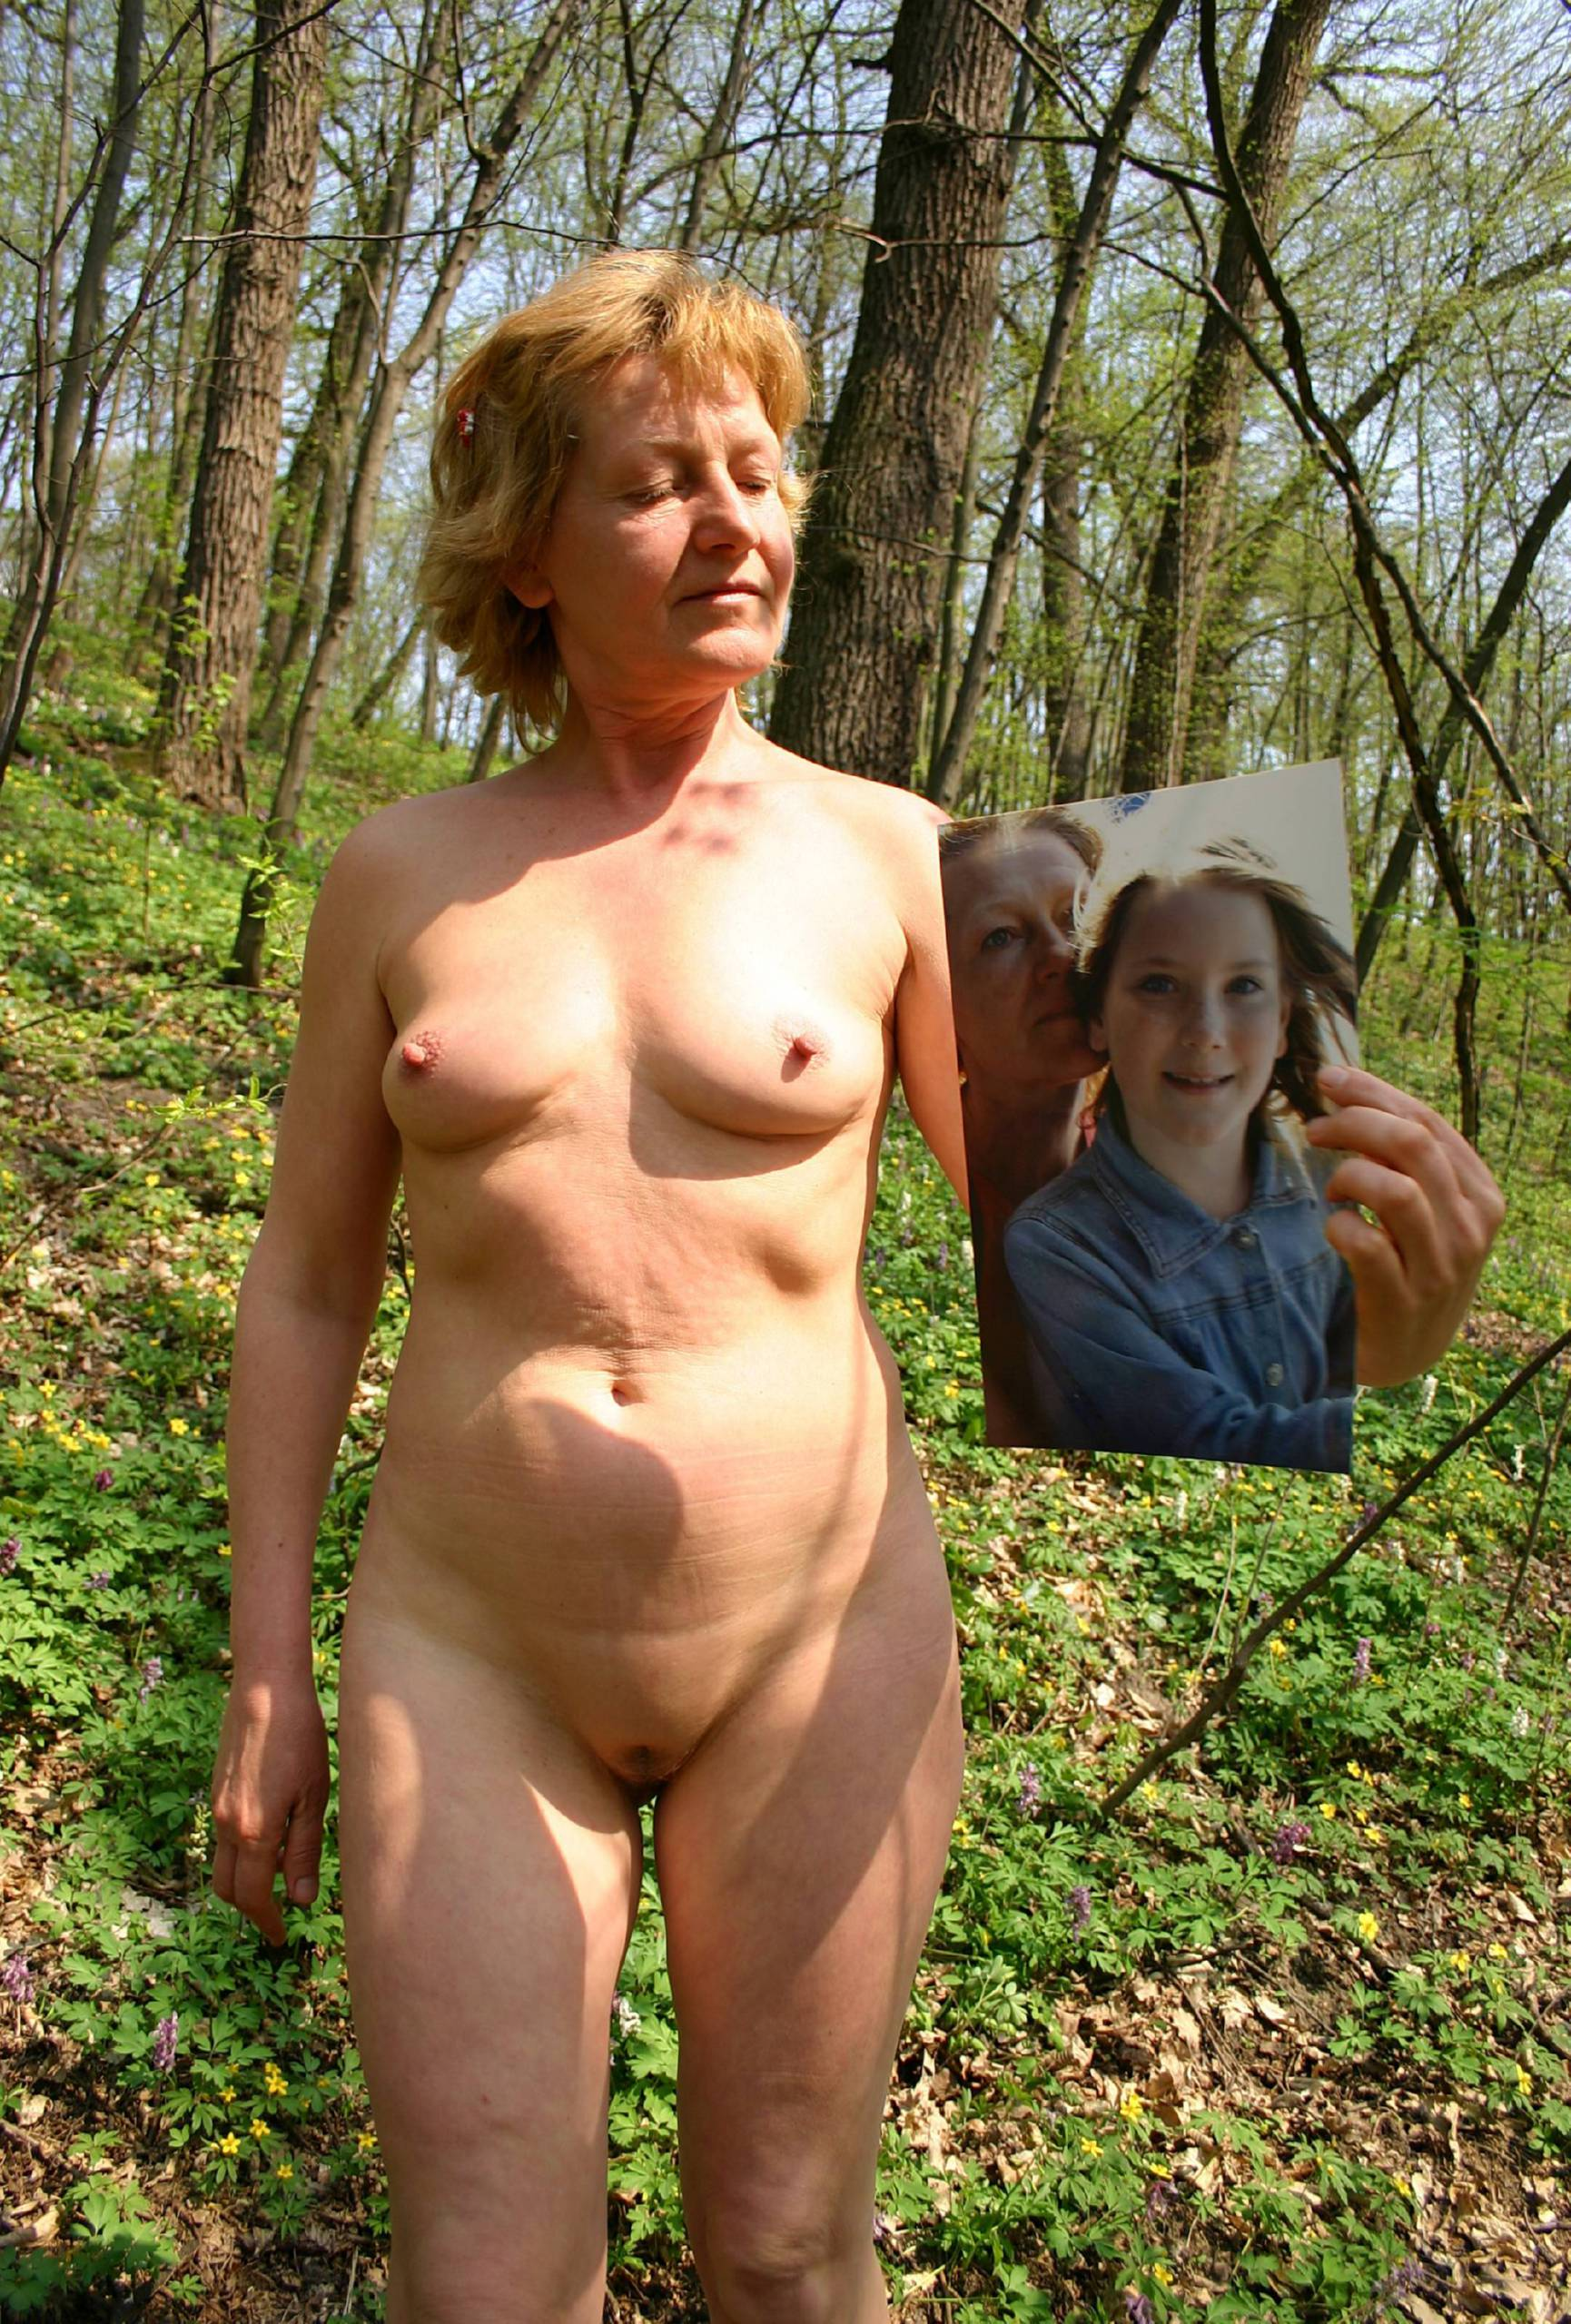 Nudist Pictures Our Sandy Green Picnic - 1